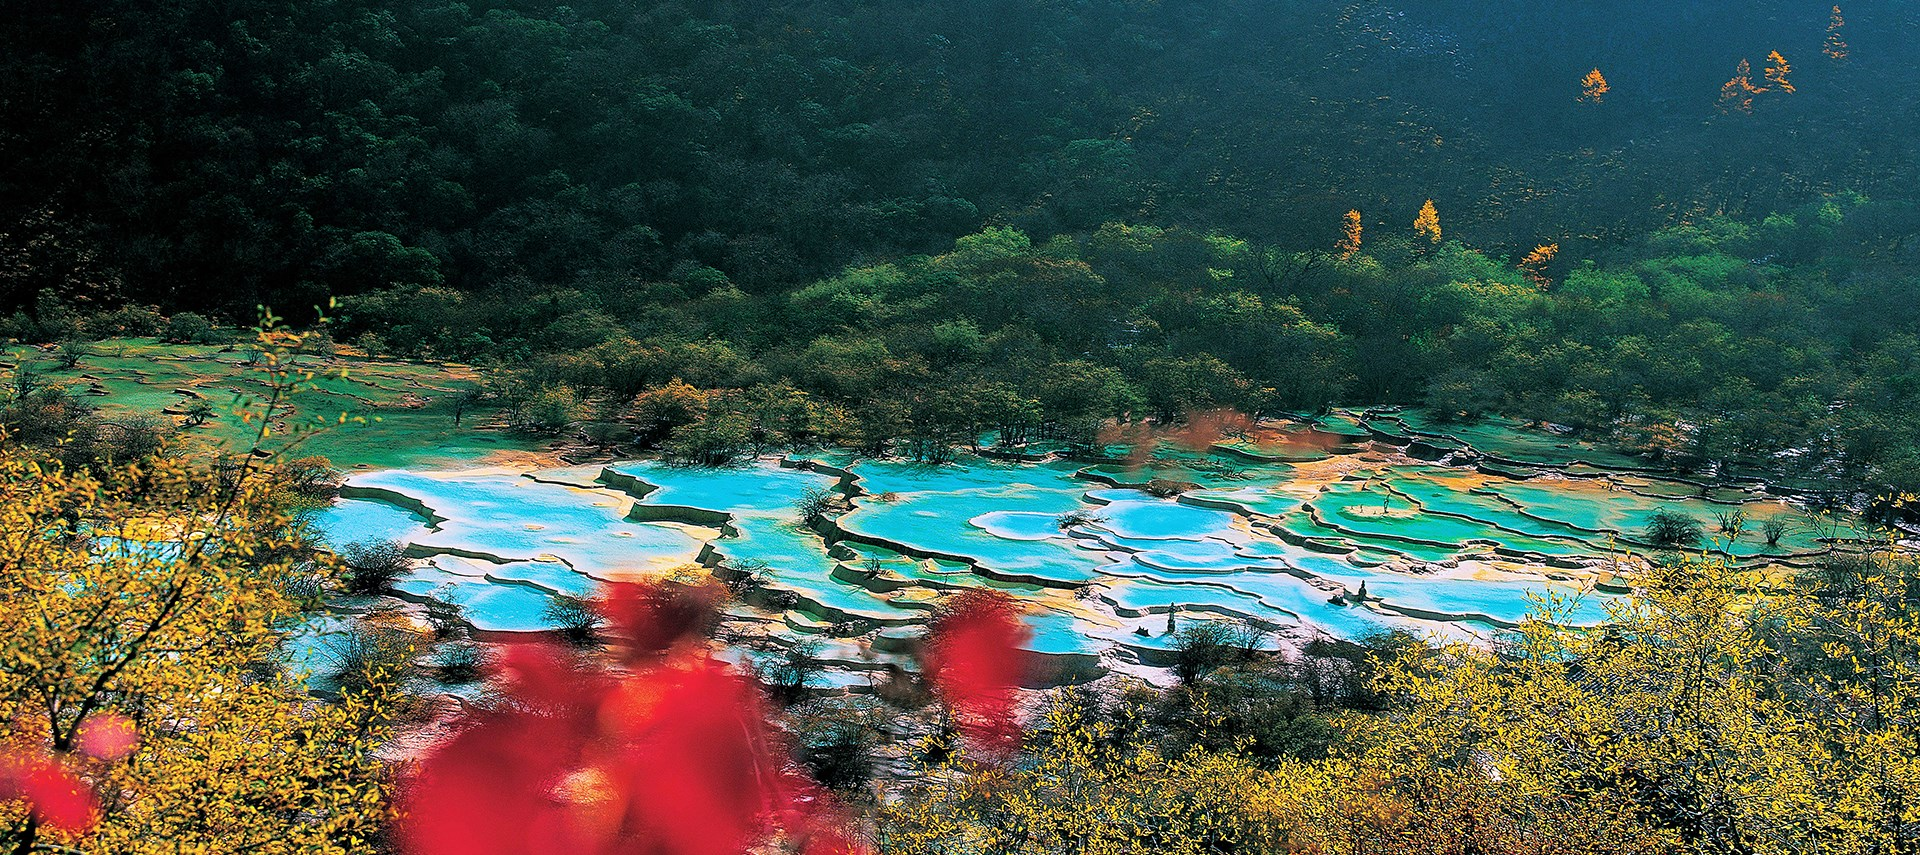 Culture and Nature Tour in Sichuan, Gansu and Qinghai